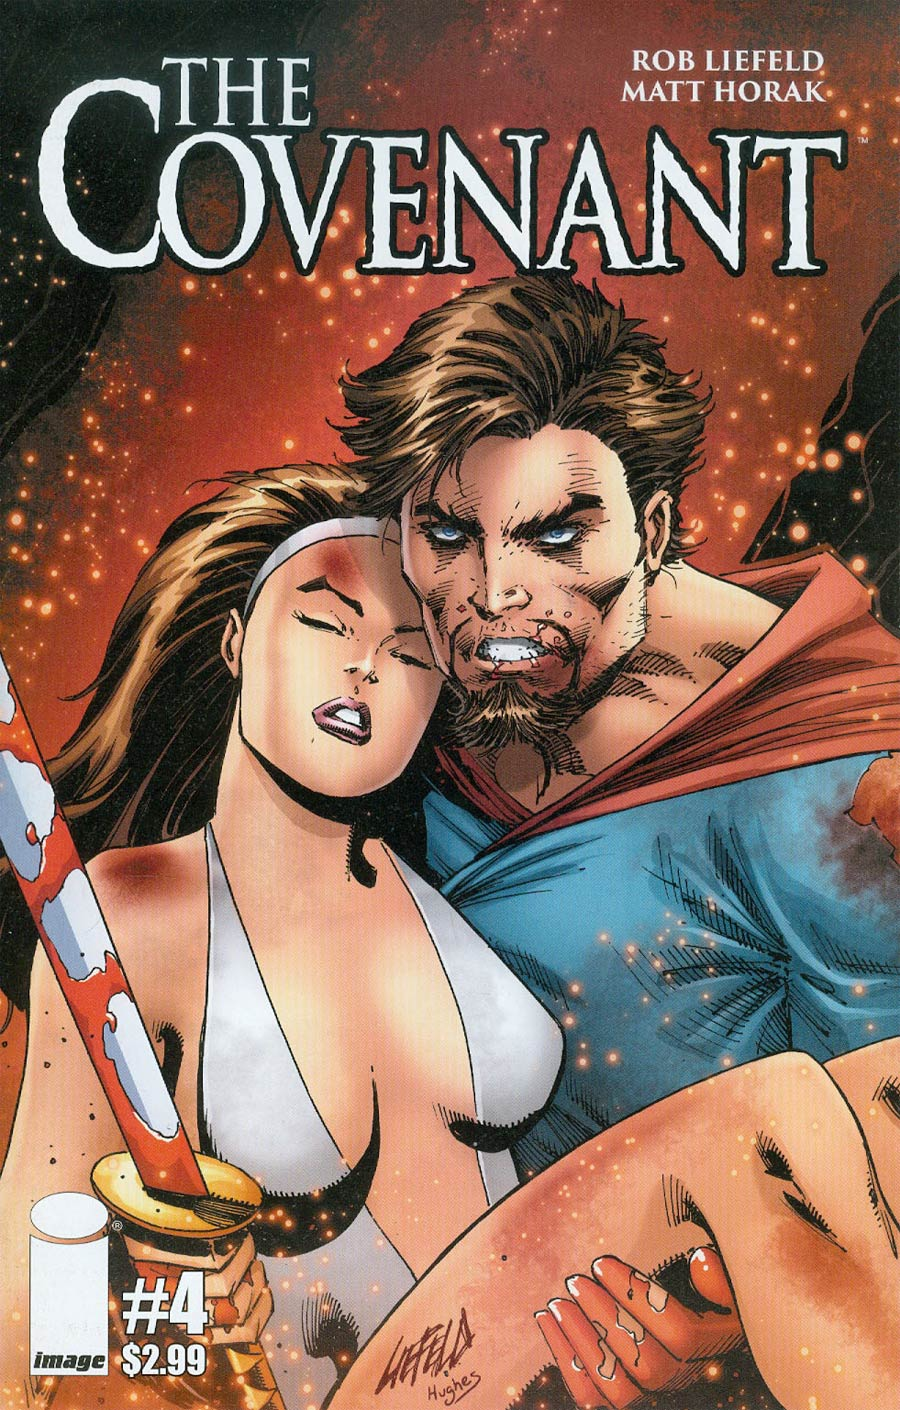 Covenant #4 Cover A Rob Liefeld